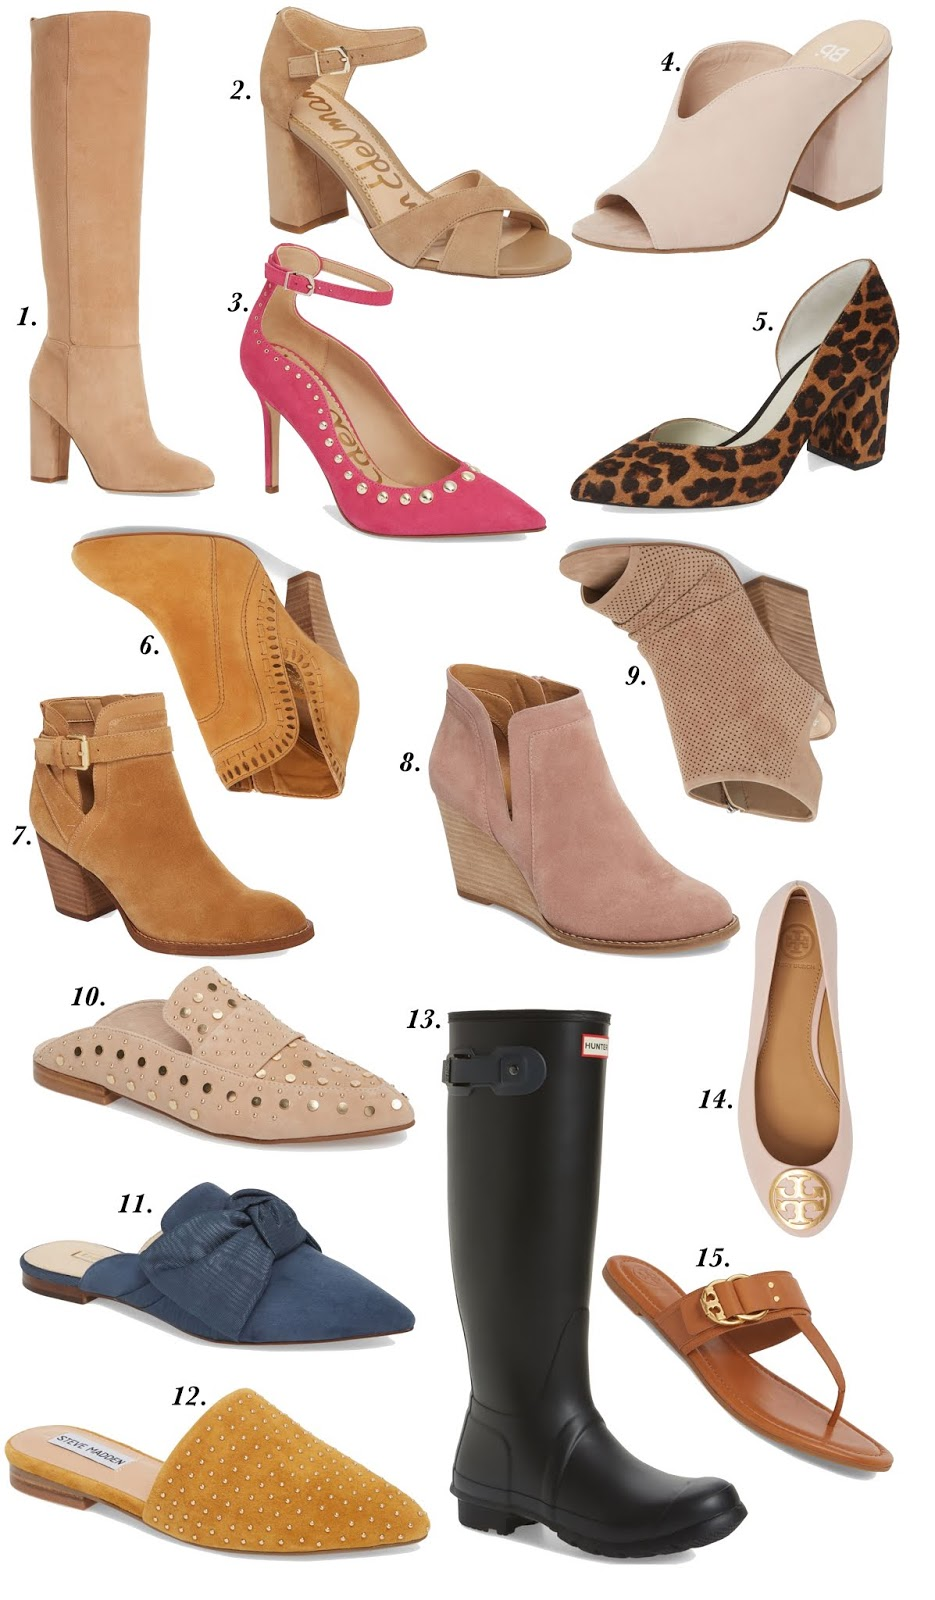 2018 Nordstrom Anniversary Sale: Shoes - Something Delightful Blog